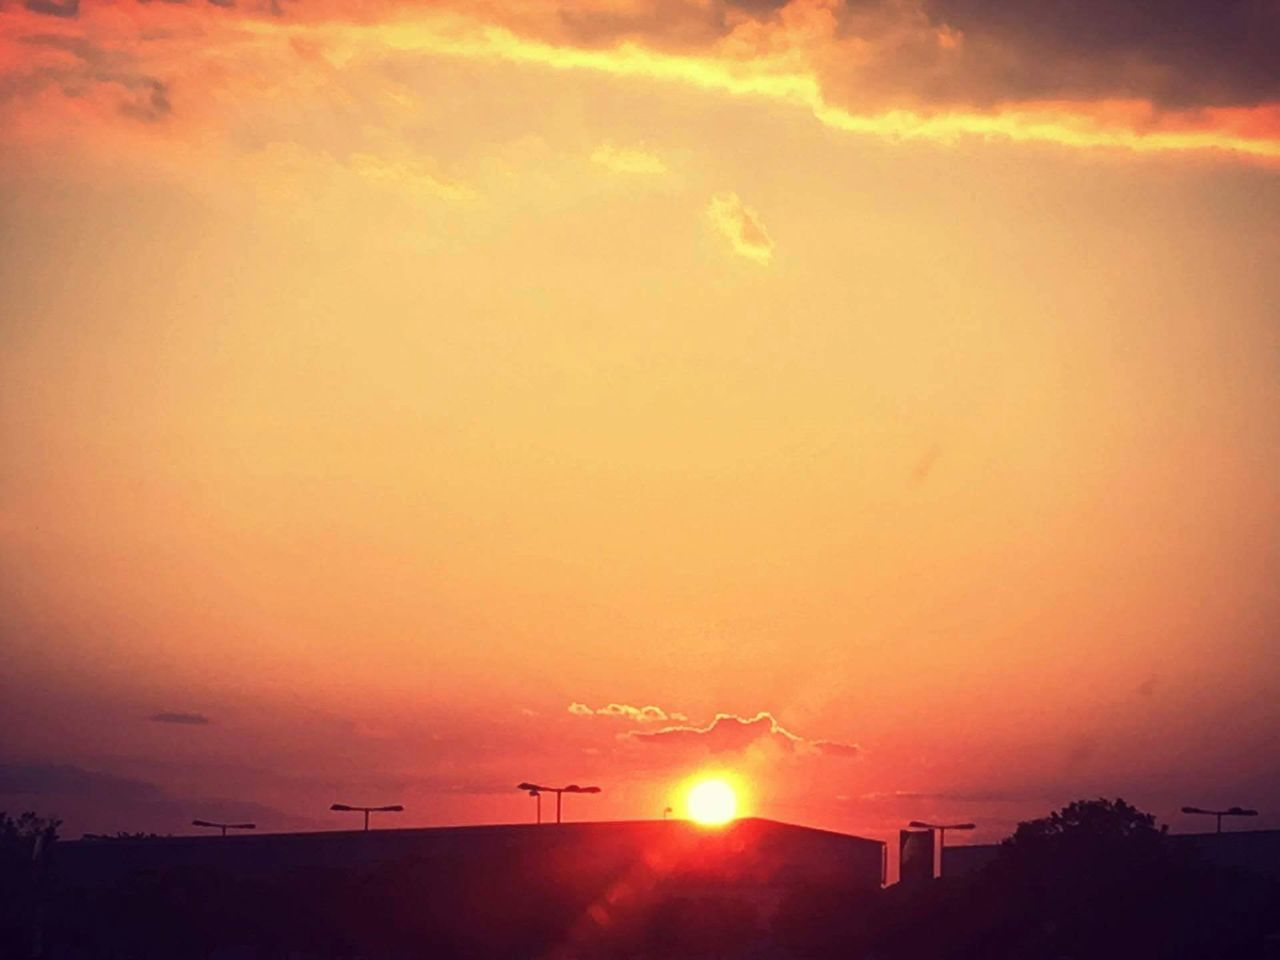 sunset, sun, orange color, sky, silhouette, beauty in nature, nature, dramatic sky, scenics, sunbeam, cloud - sky, outdoors, no people, tranquility, tranquil scene, built structure, building exterior, architecture, day